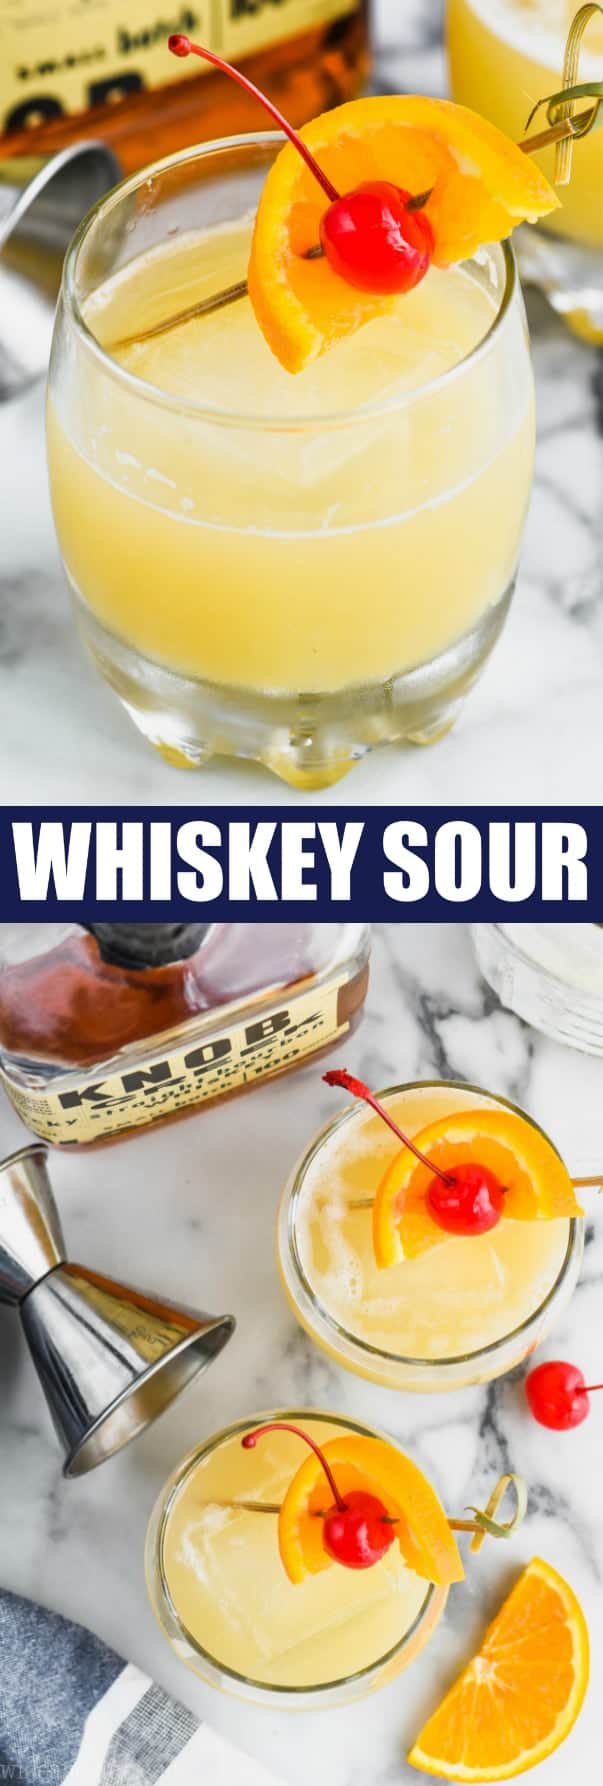 A collage of two photos: a close up of the Whiskey Sour with a toothpick puncturing a orange slice and cherry, and the other photo is an overhead photo of two Whiskey Sours